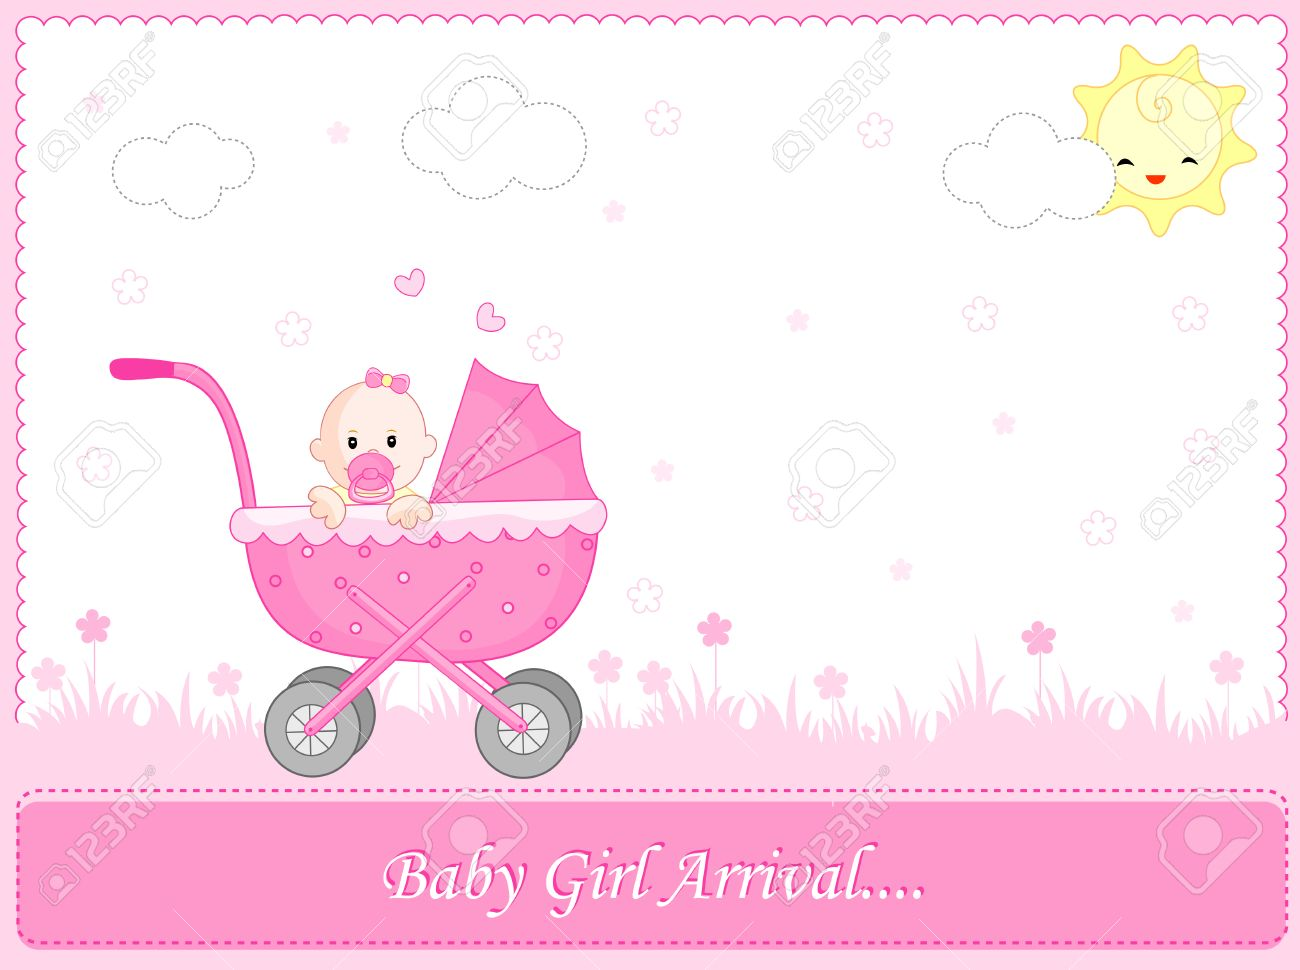 cute pink baby girl arrival card background frame with a go